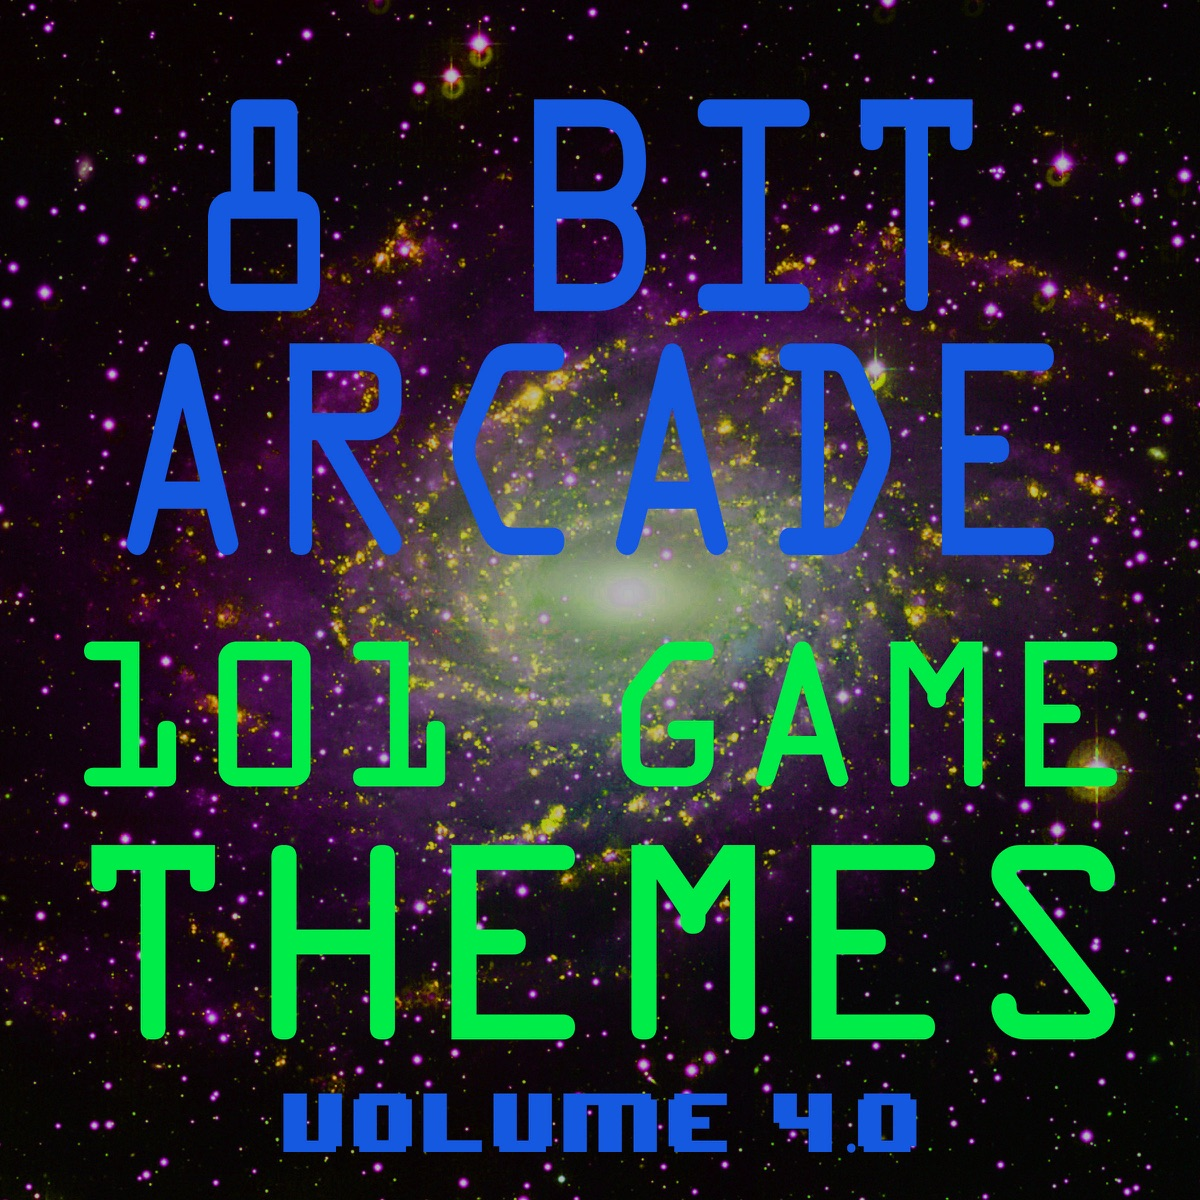 101 Game Themes Vol 40 8-Bit Arcade CD cover